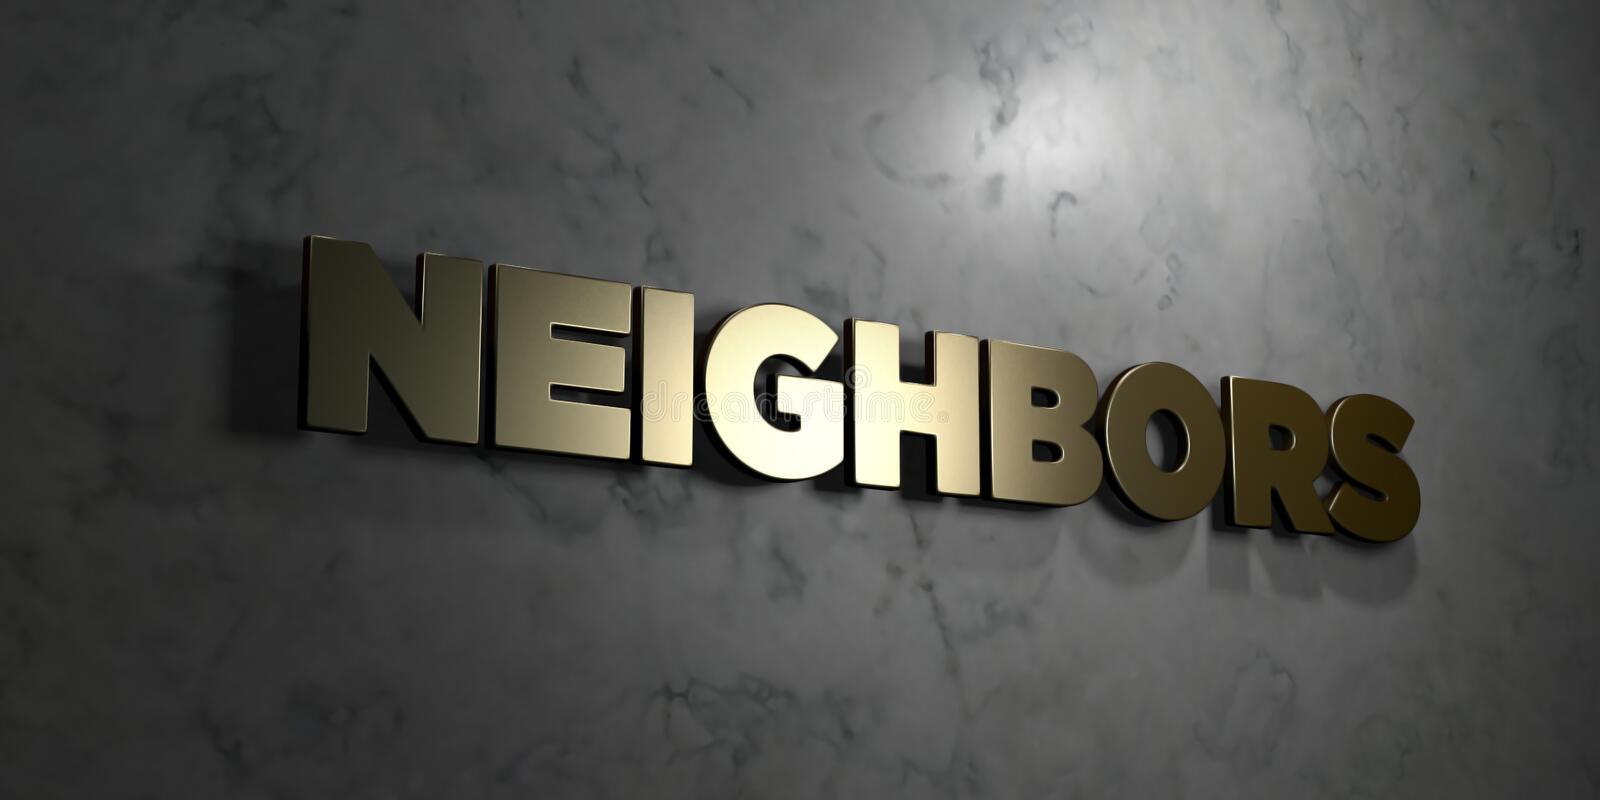 Neighbors - Gold text on black background - 3D rendered royalty free stock picture. This image can be used for an online website banner ad or a print postcard vector illustration